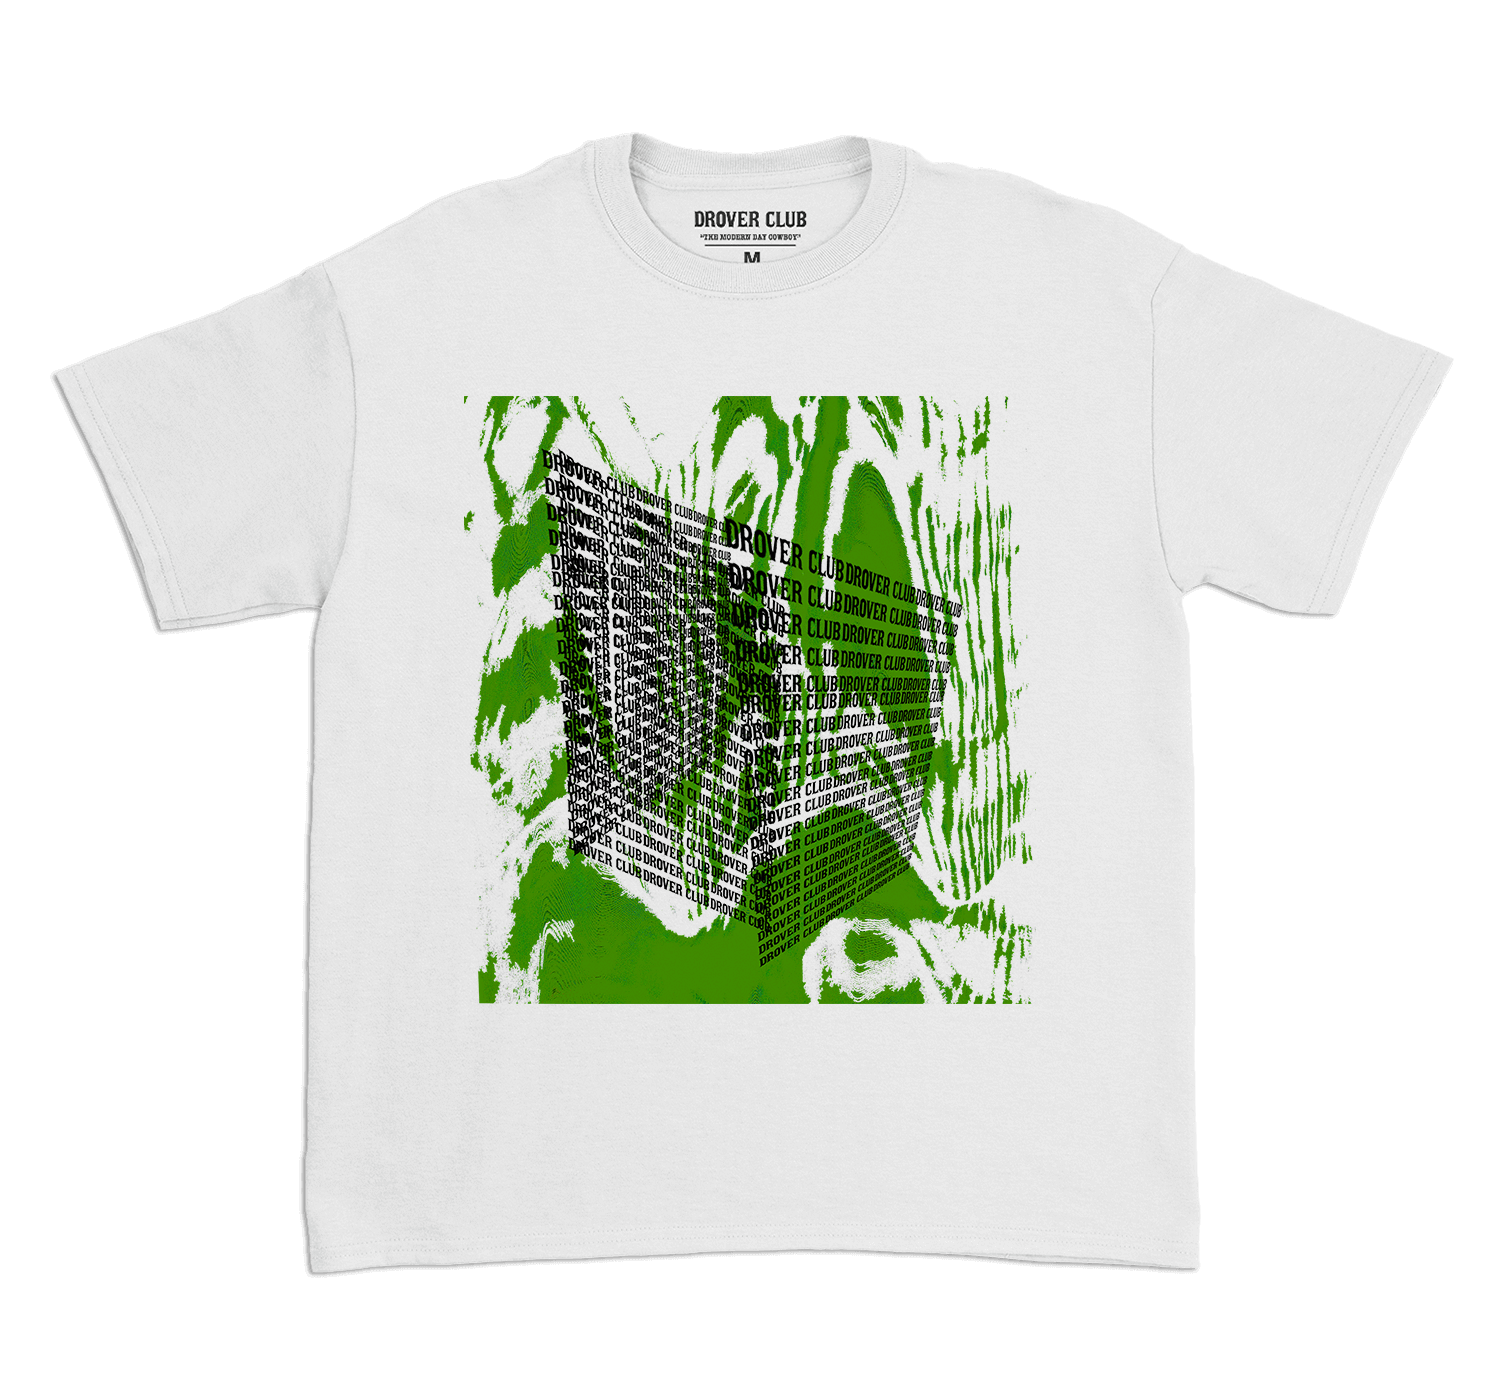 """Maverick splash green tee from the """"Maverick Adventure"""" collection released by Drover club"""